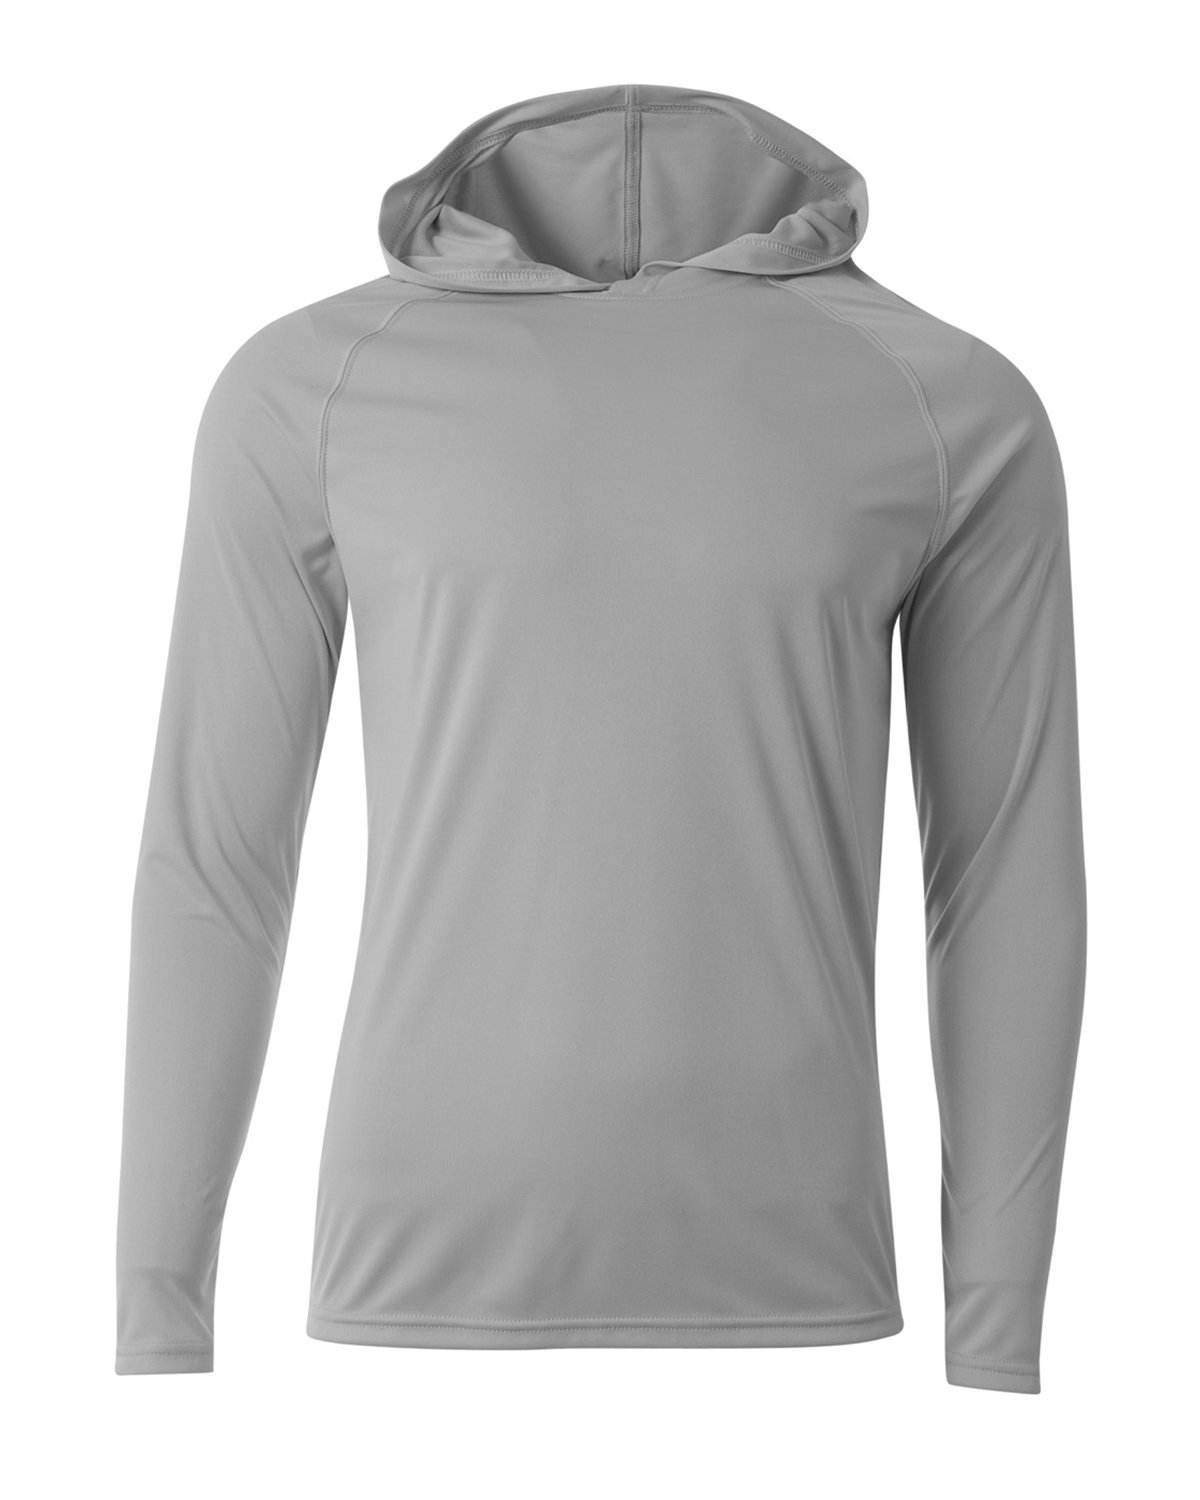 A4 Men's Cooling Performance Long-Sleeve Hooded T-shirt SILVER